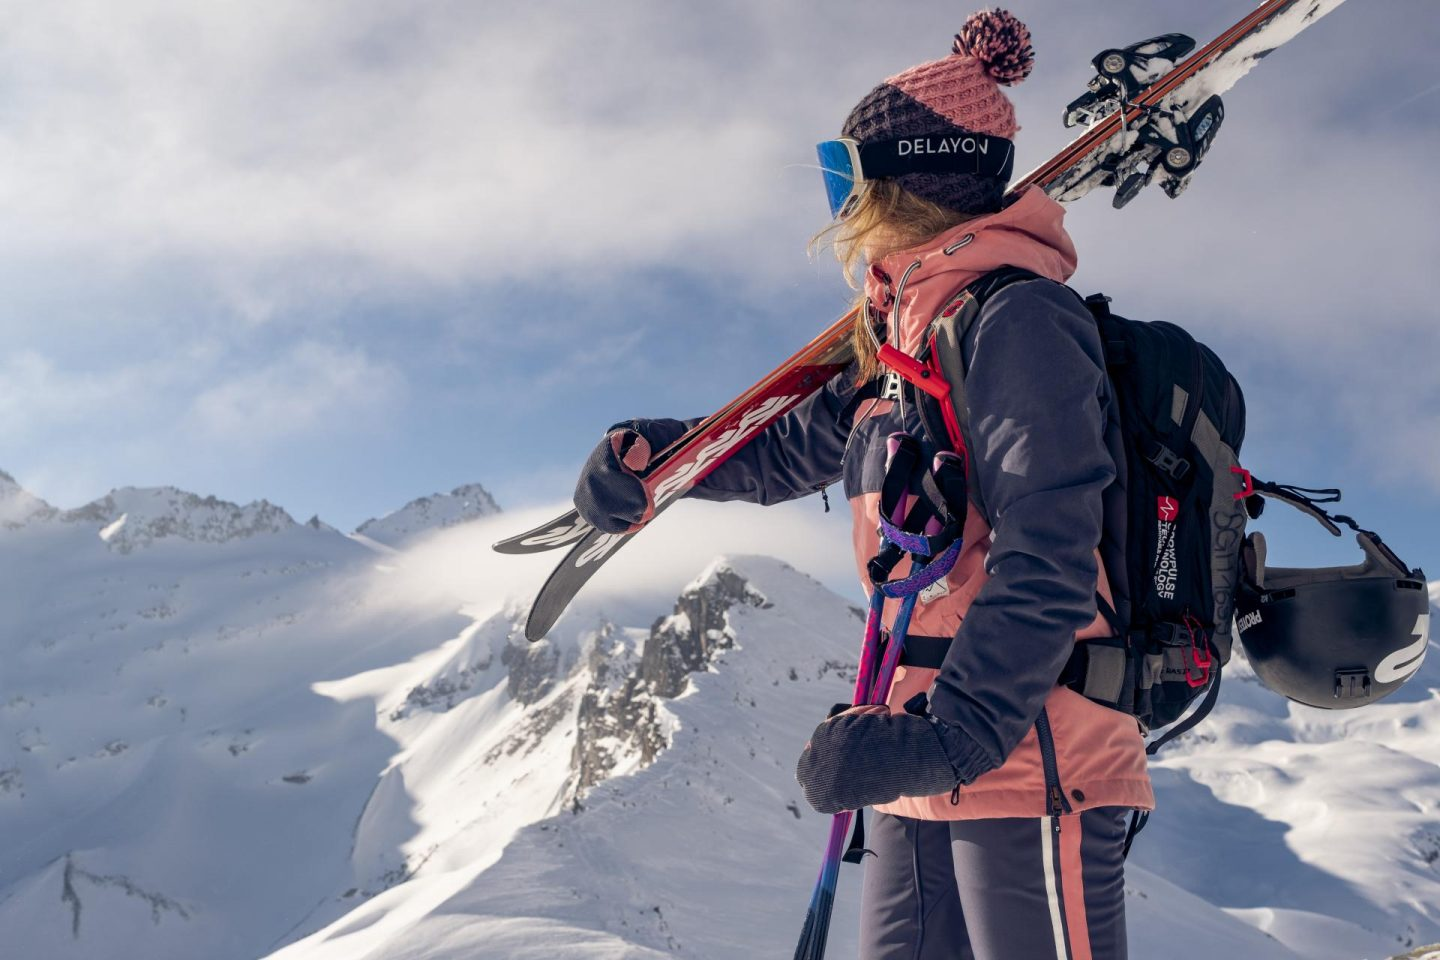 Best Women's Ski Gear | Best snowsports clothes for 2020 reviewed